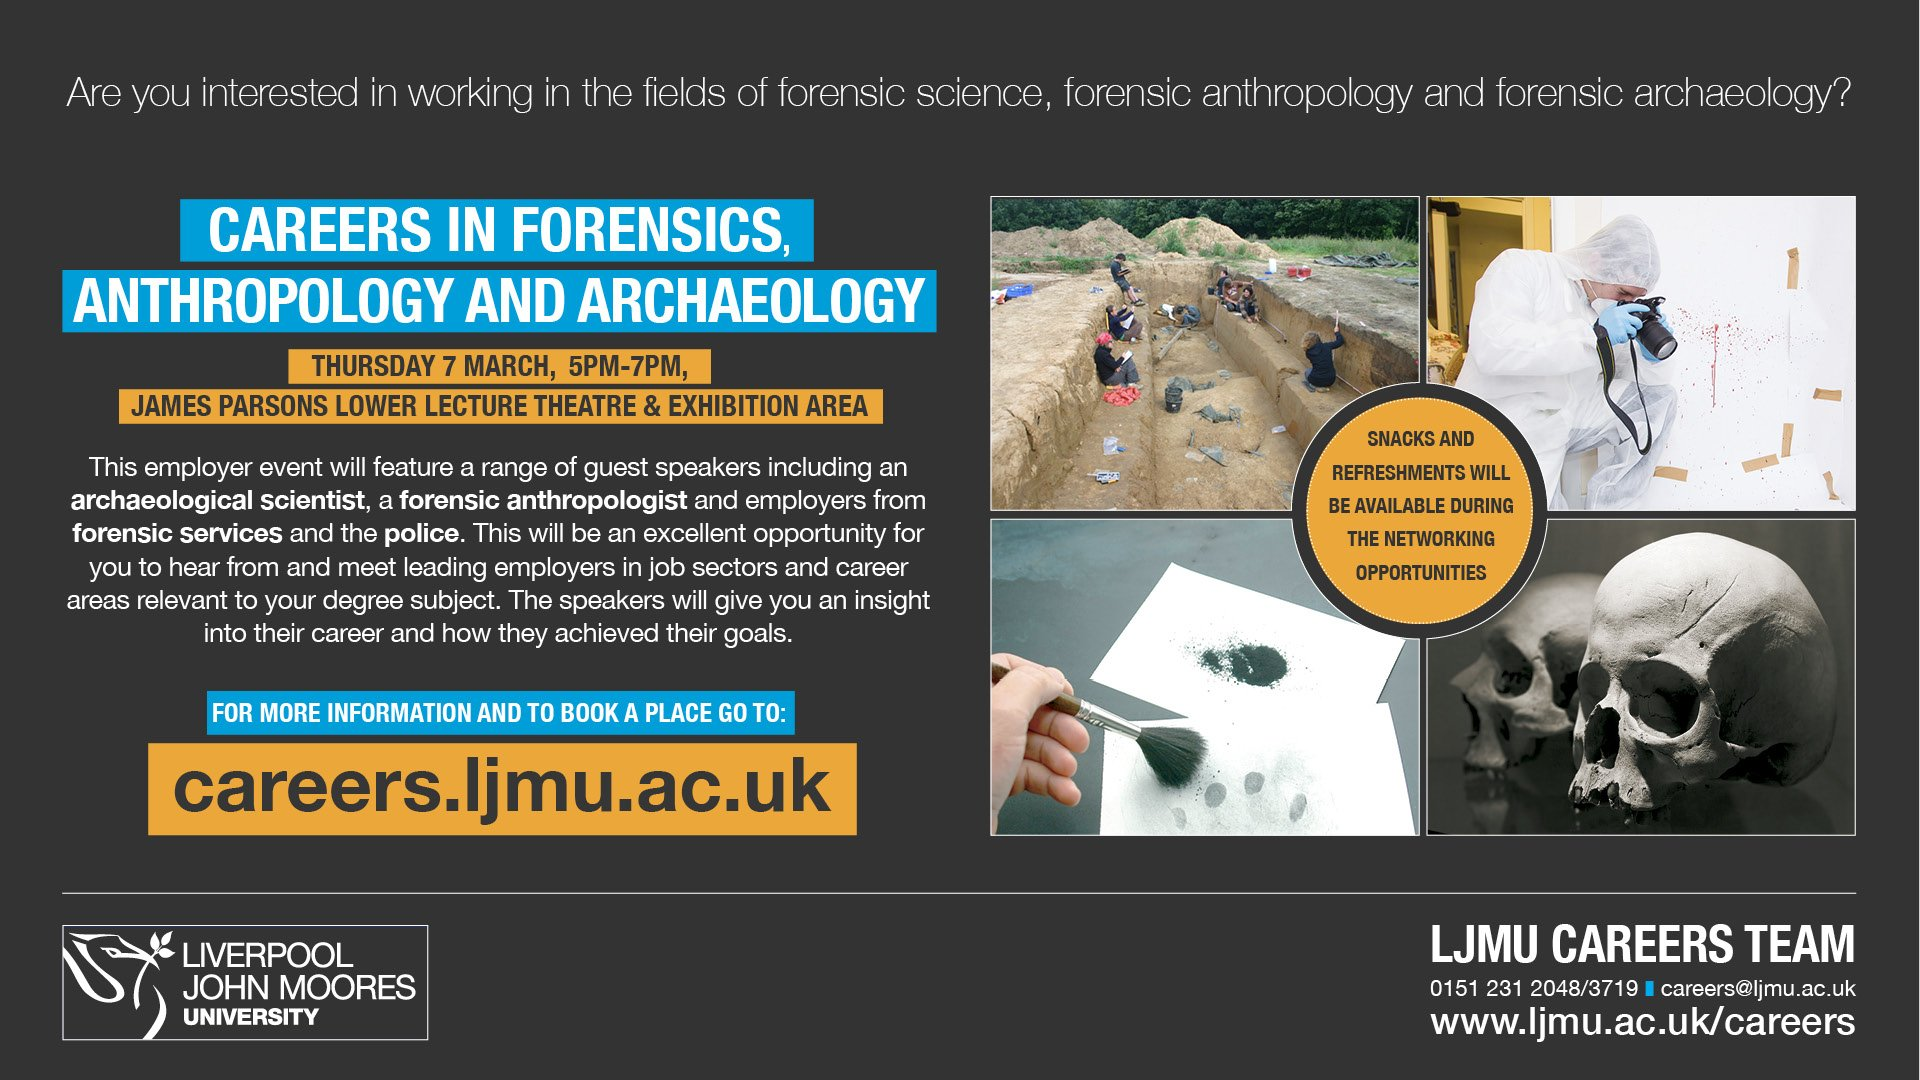 Ljmu Careers Team On Twitter Careers In Forensics Anthropology Archaeology 27 Feb 1 4pm James Parson Lower Lecture Theatre Guest Speakers Include An Archaeological Scientist A Forensic Anthropologist Employers From